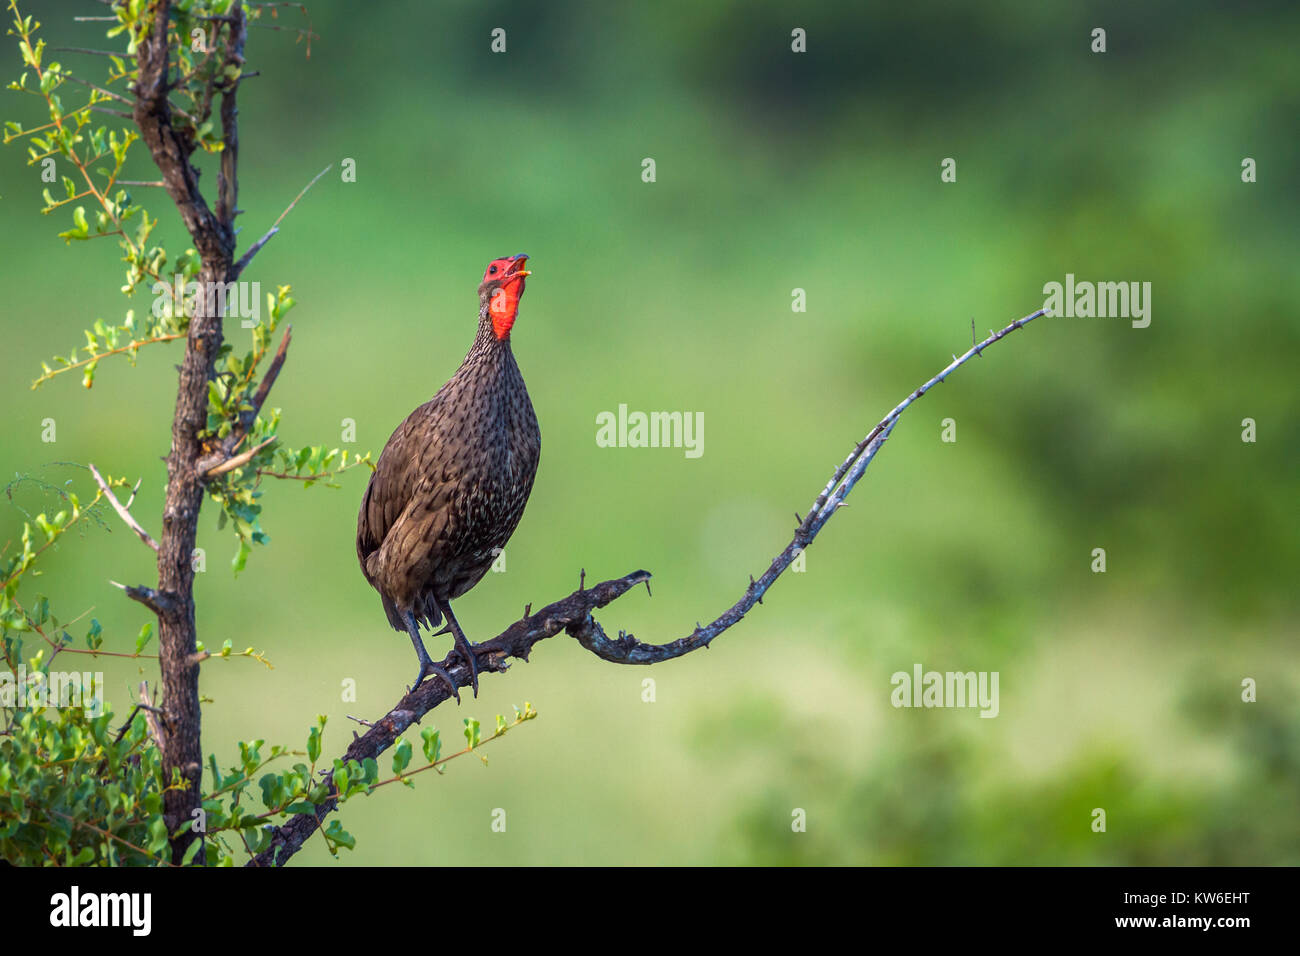 Swainson's spurfowl in Kruger National park, South Africa ;Specie Pternistis swainsonii family of Phasianidae - Stock Image